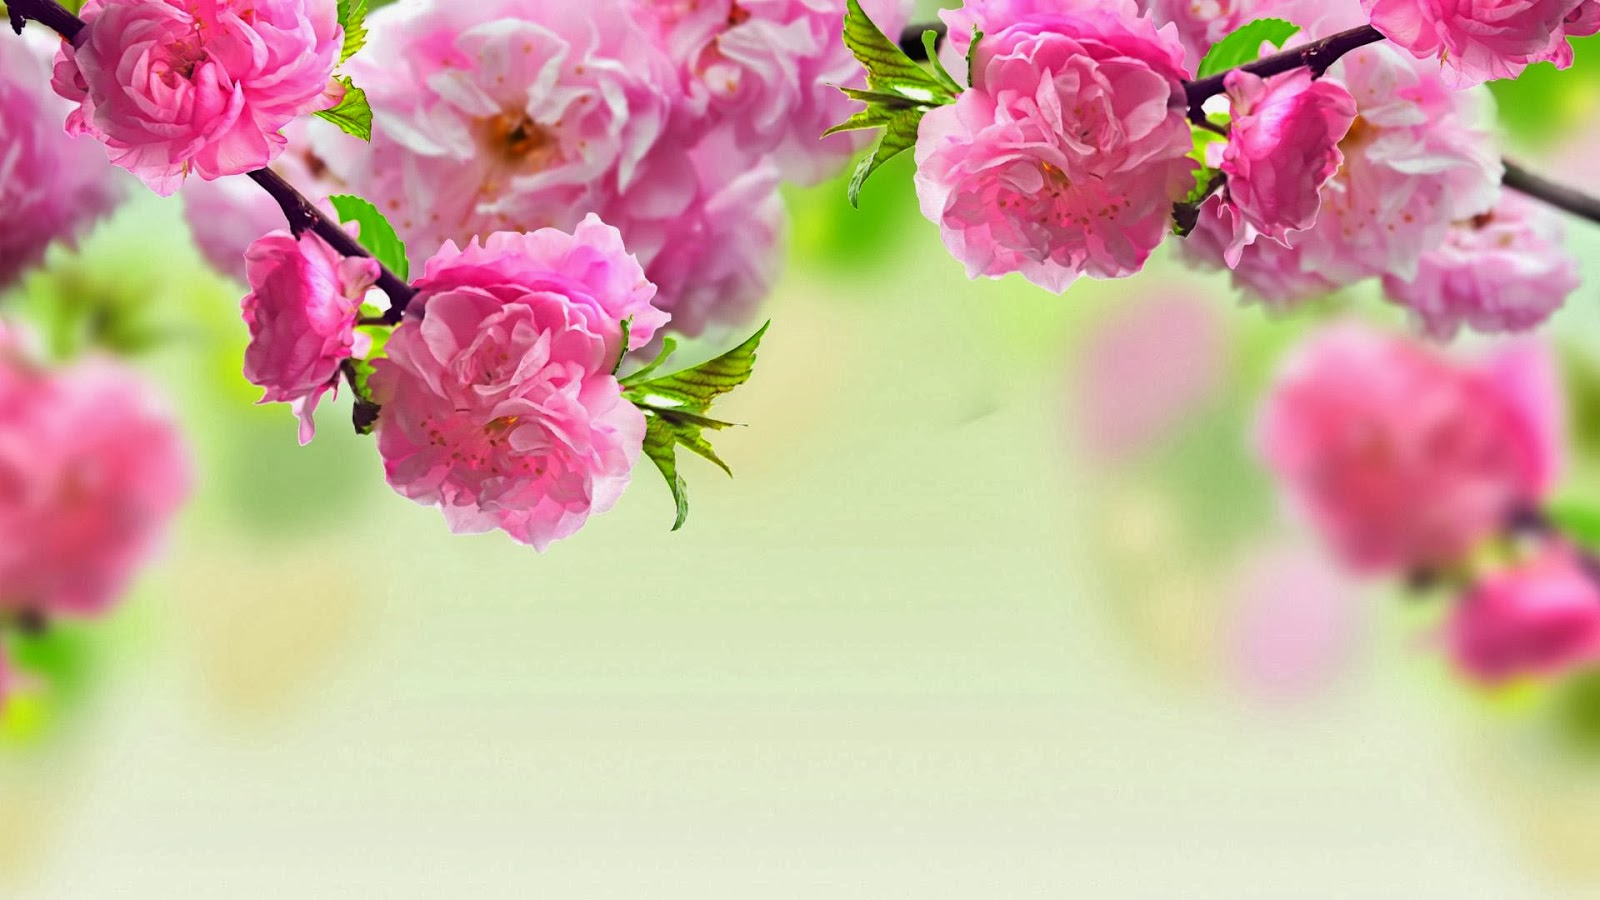 HD wallpapers 1080p widescreen Flowers | Nice Pics Gallery